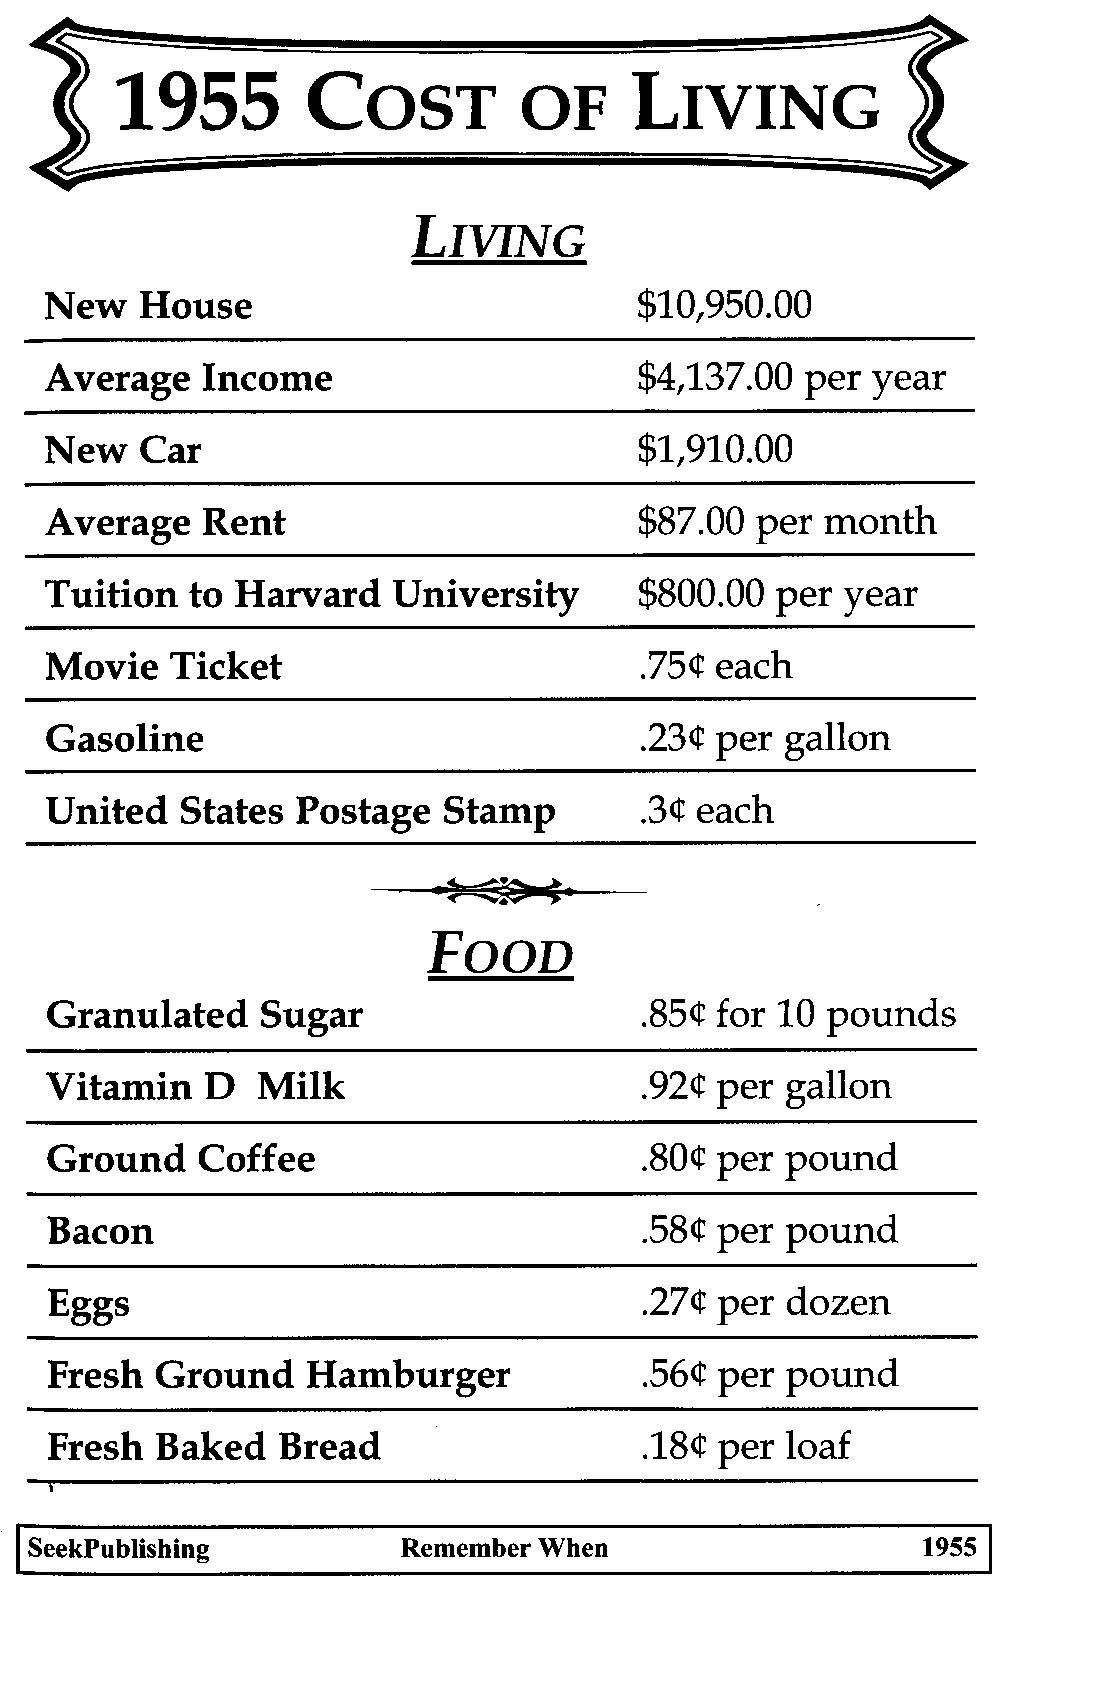 Cost Of Living Proof Of Inflation